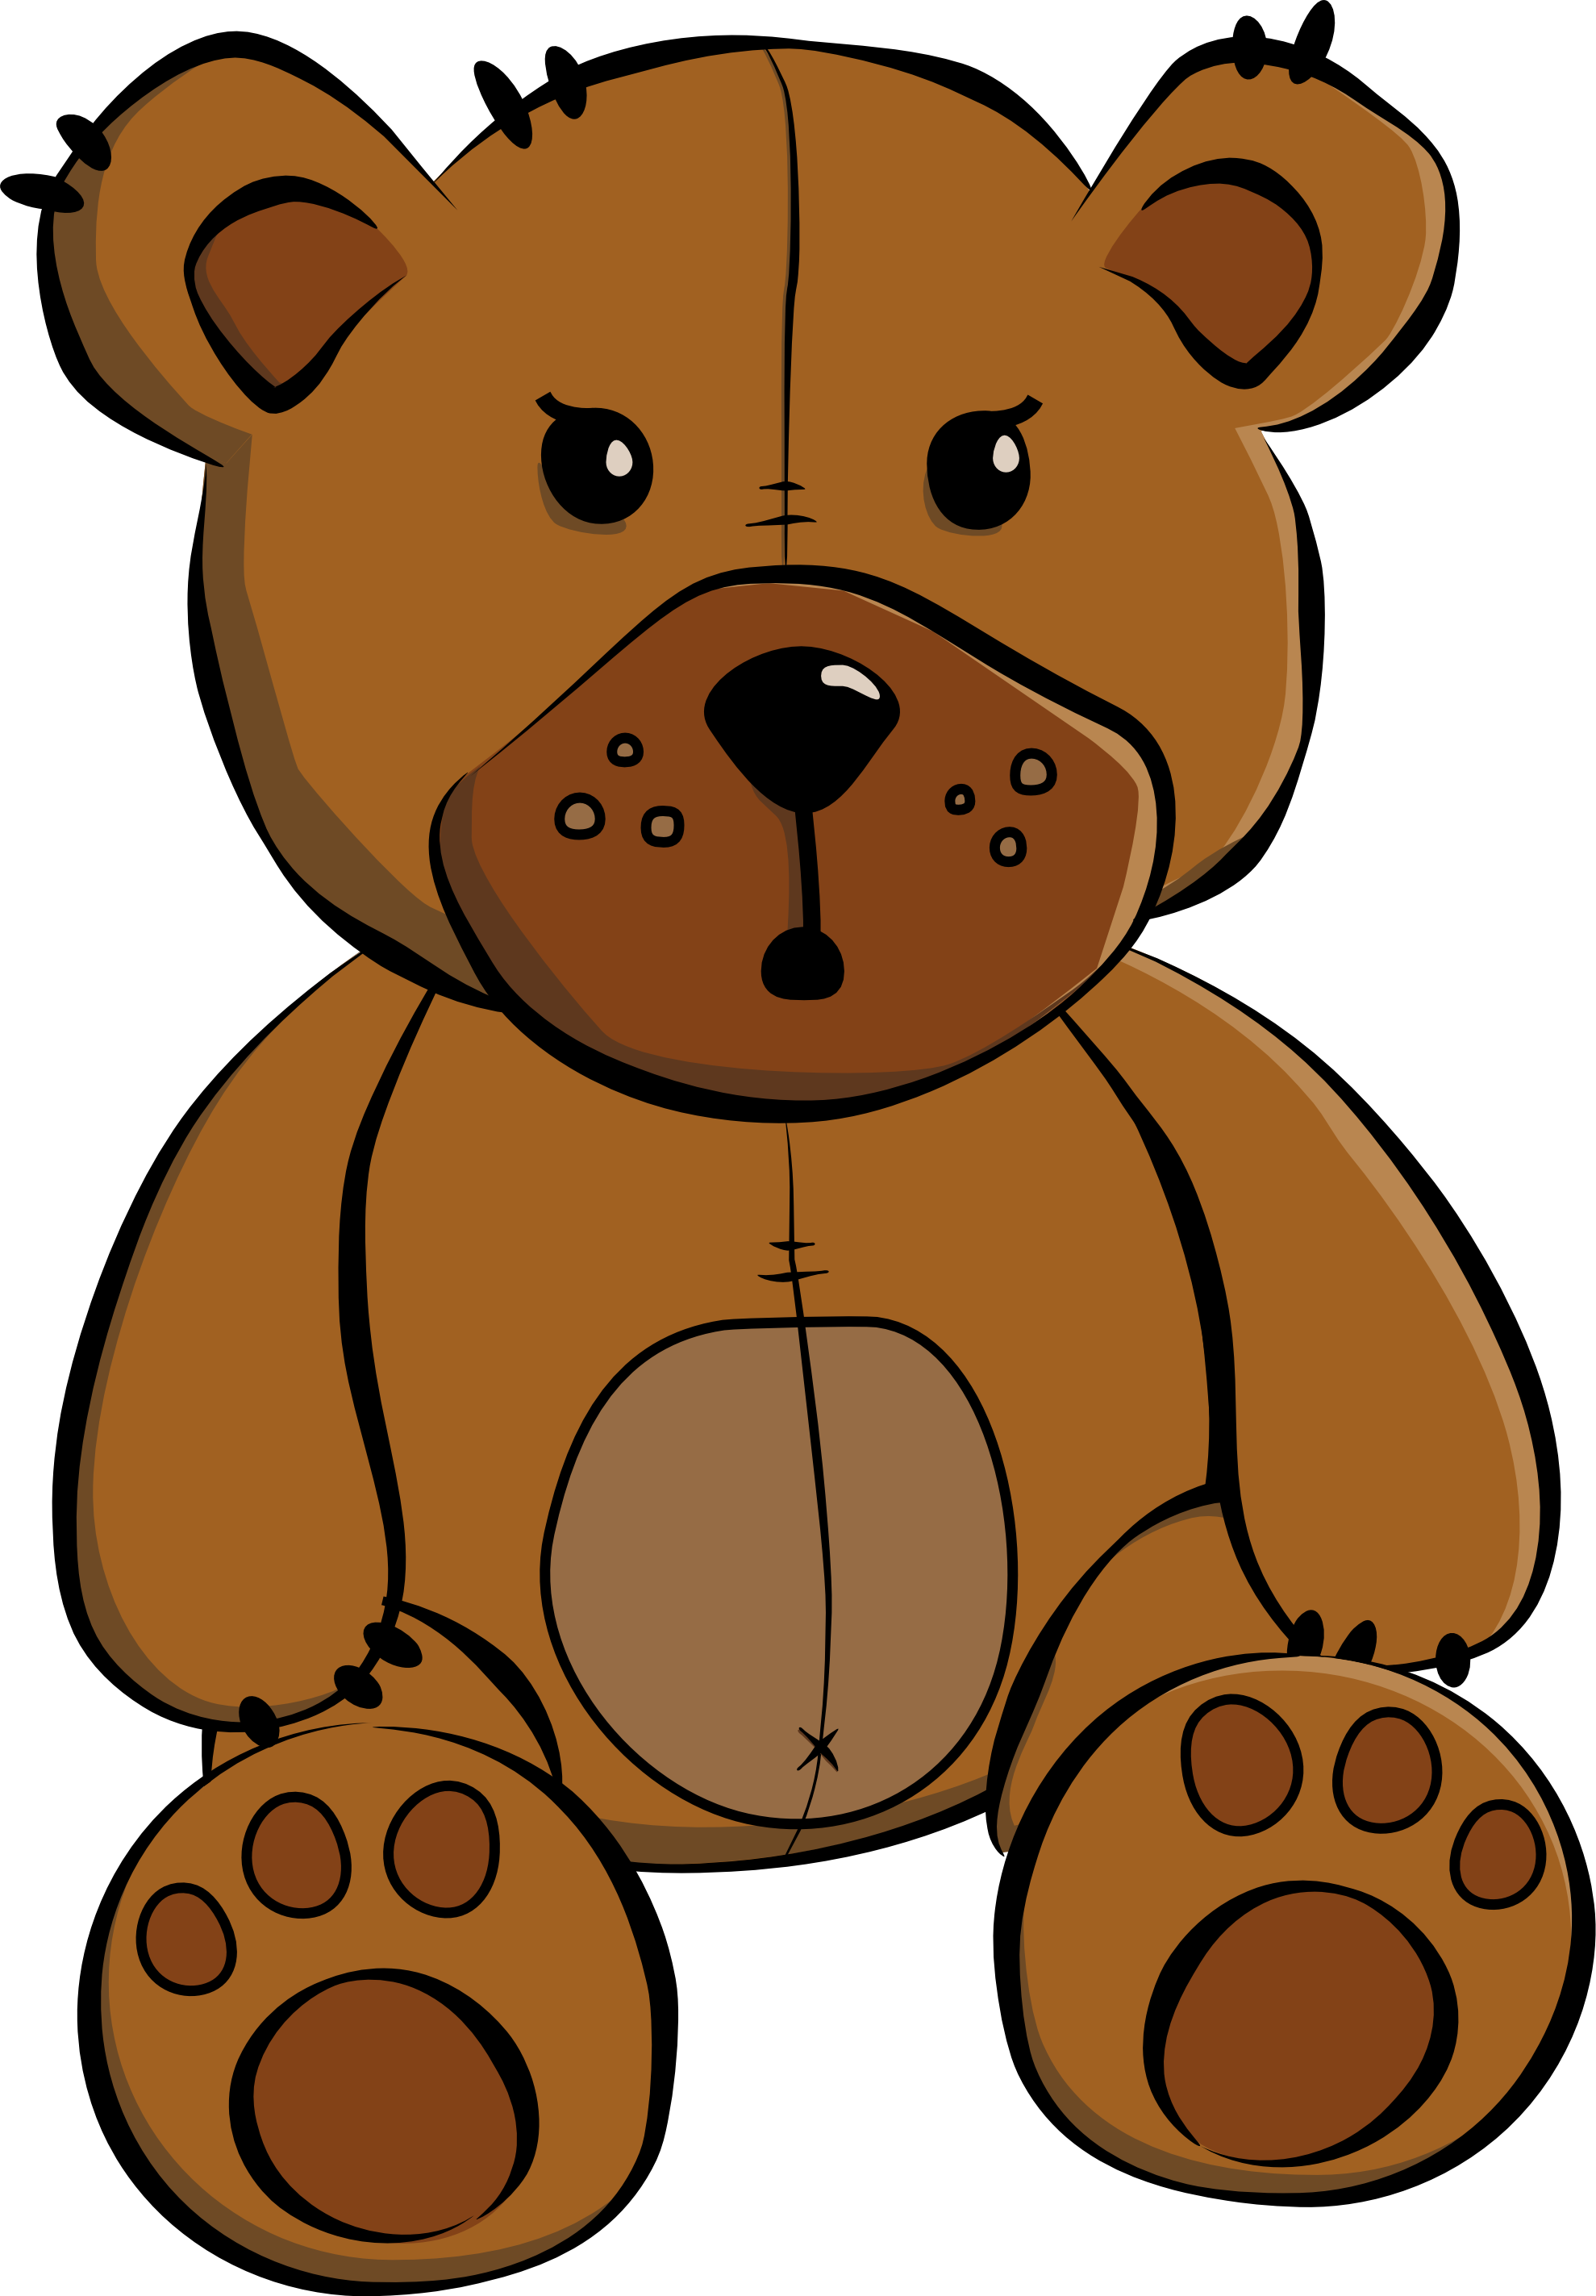 clipart bear transparent background clipart bear transparent background transparent free for download on webstockreview 2020 clipart bear transparent background